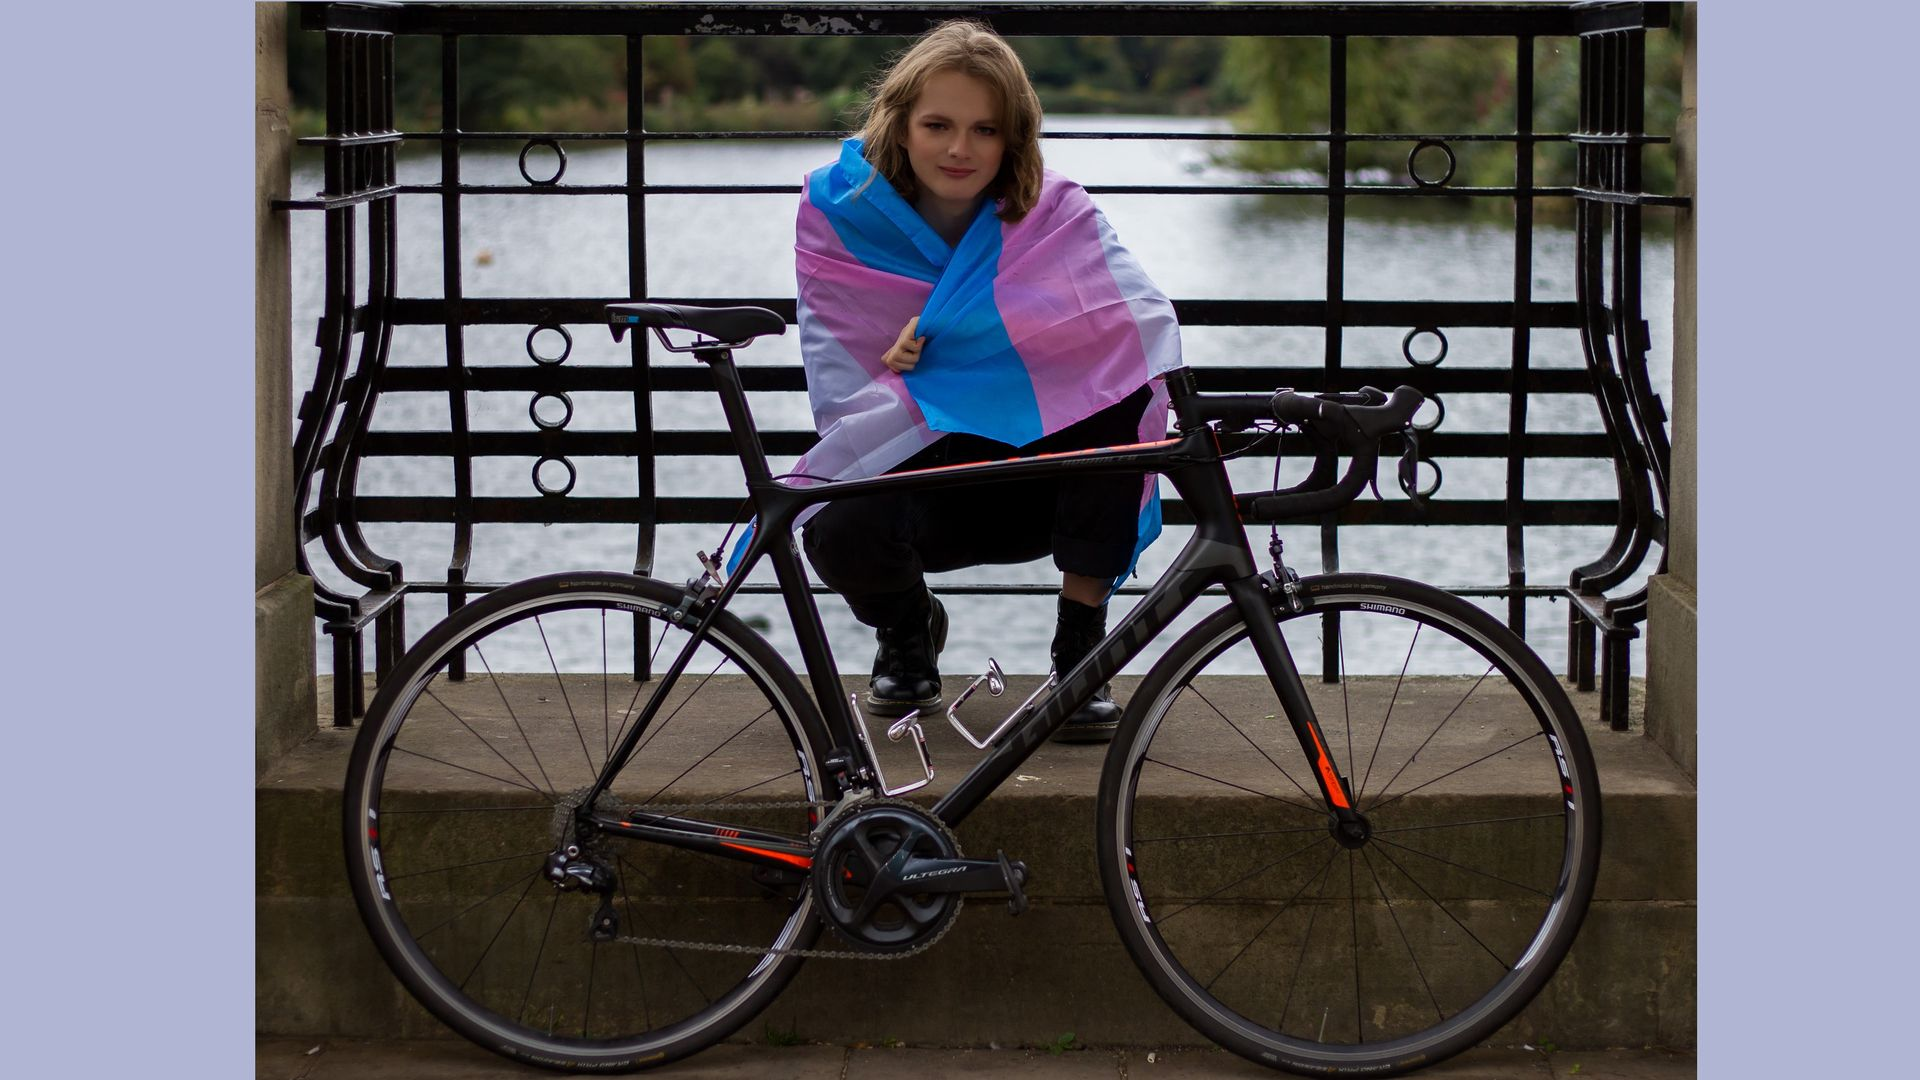 'It's the right time for me to come out as trans in cycling'